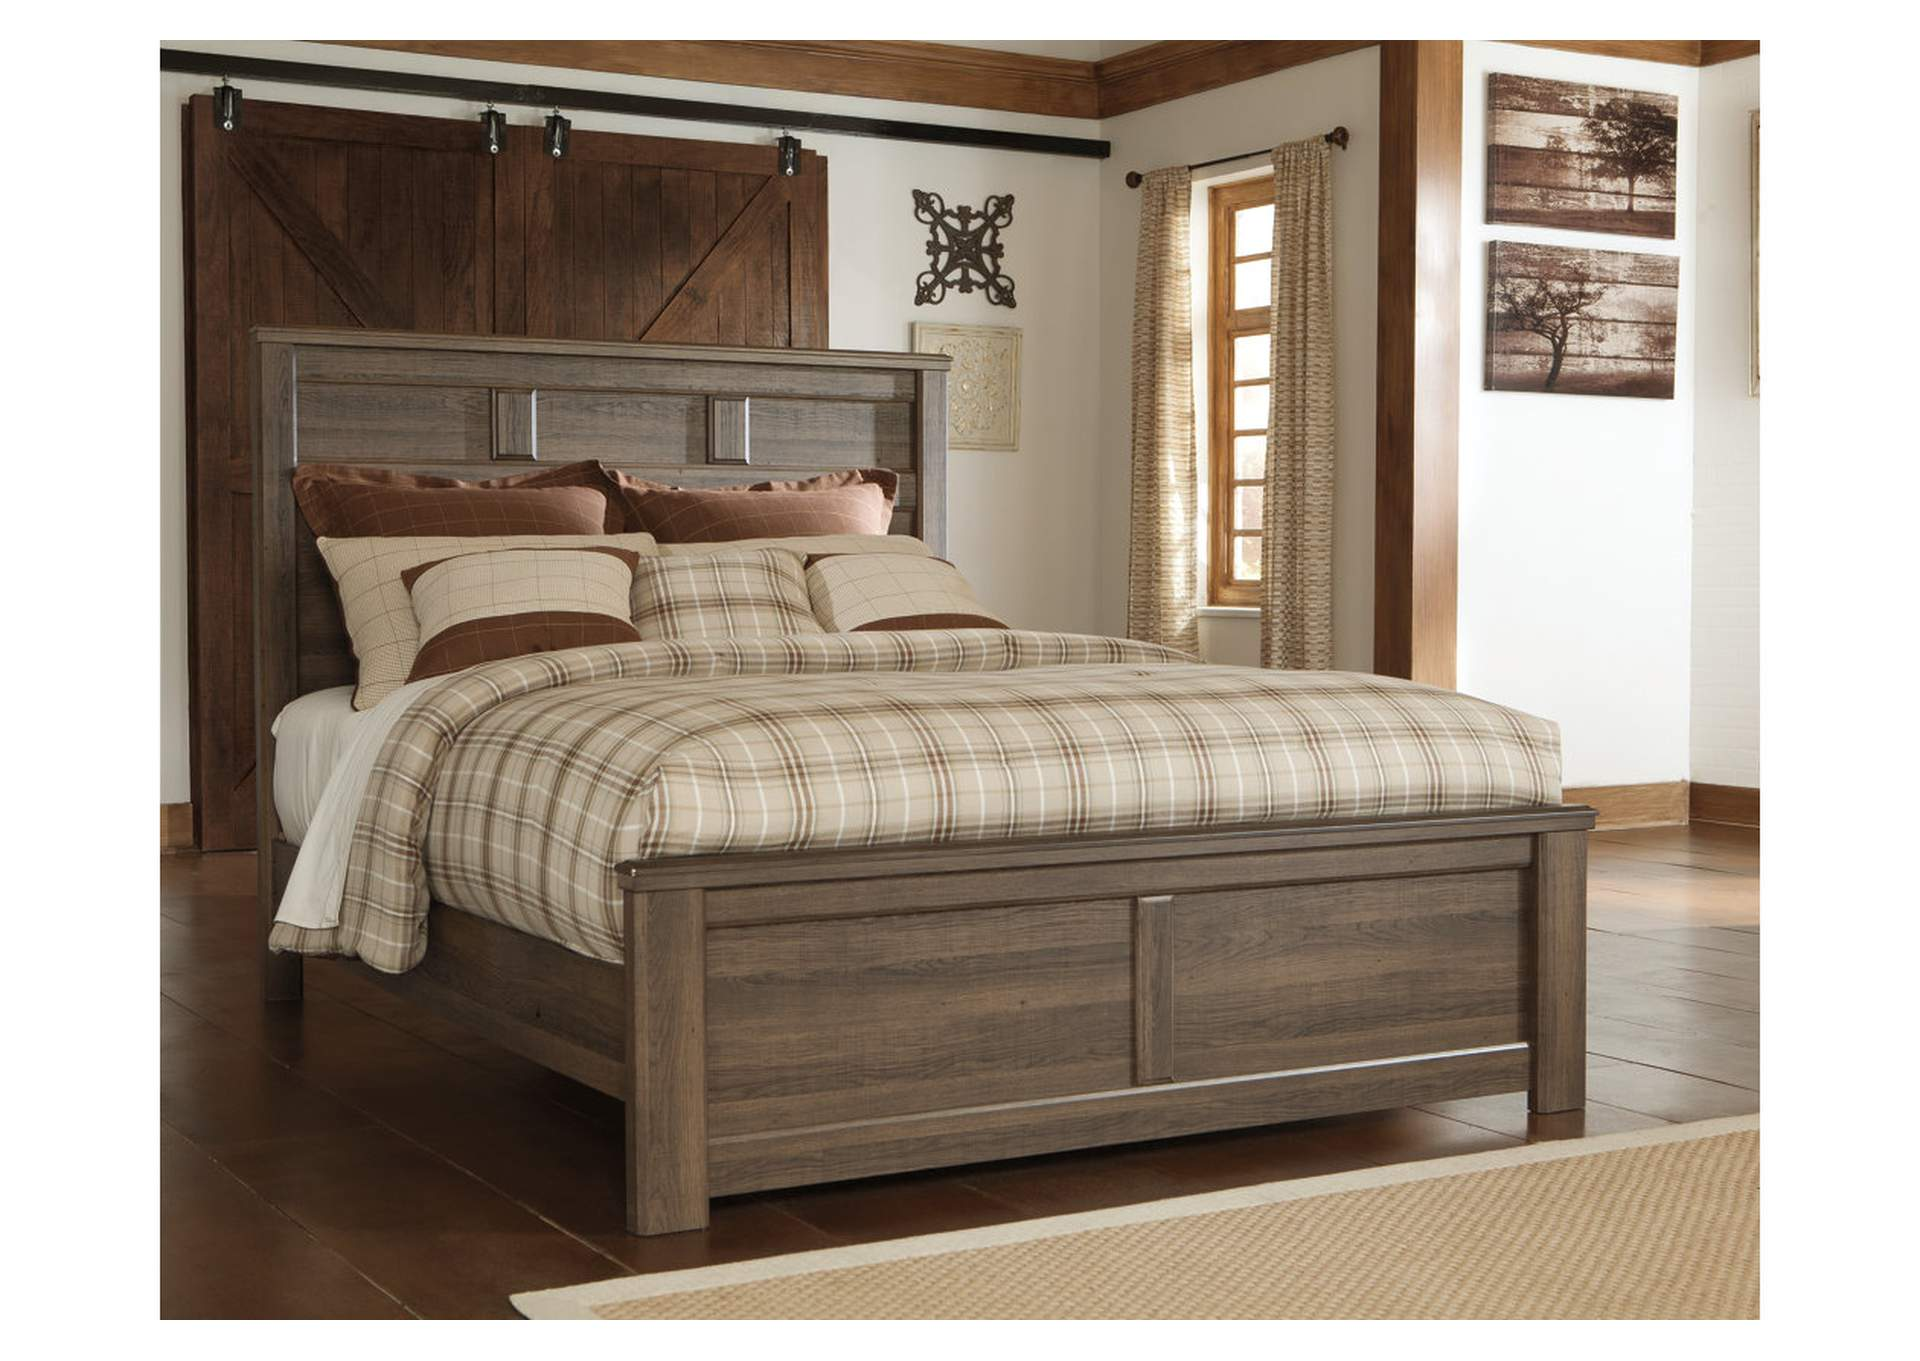 Juararo King Panel Bed,Signature Design By Ashley